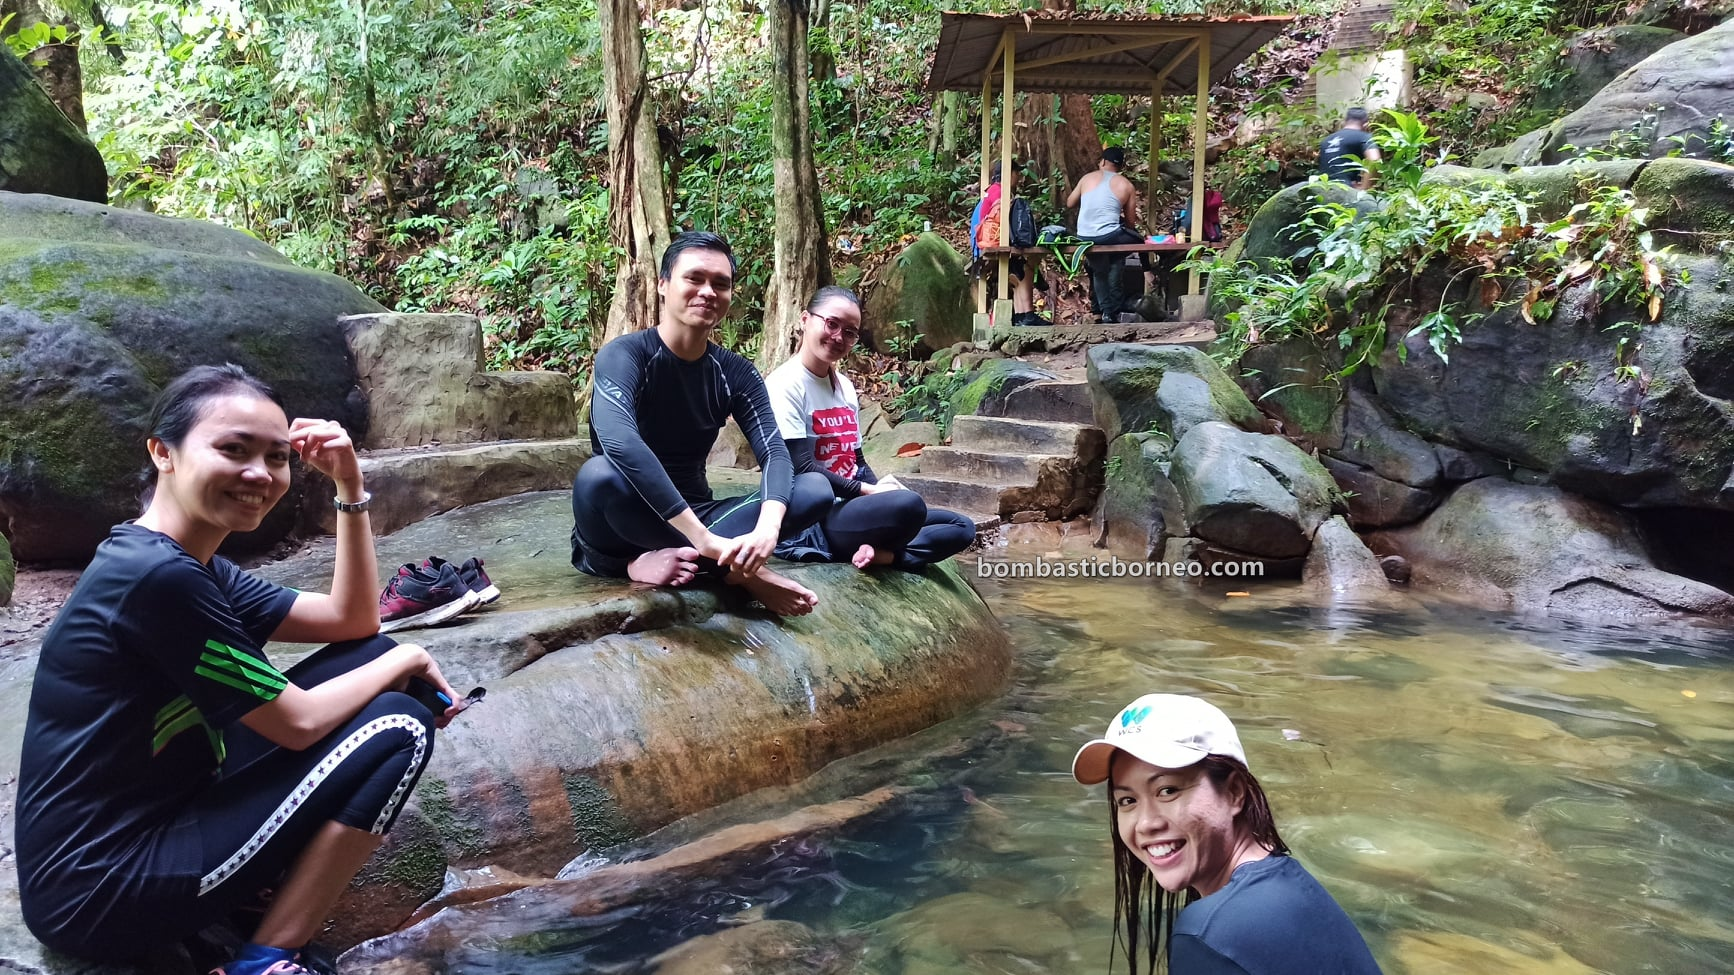 Air Terjun Satow, Kampung Bobak, outdoor, alam, destination, Bau, Singai, Malaysia, tarikan pelancong, tourist attraction, travel local, Trans Borneo, 探索婆罗洲游踪, 马来西亚砂拉越, 古晋瀑布旅游景点